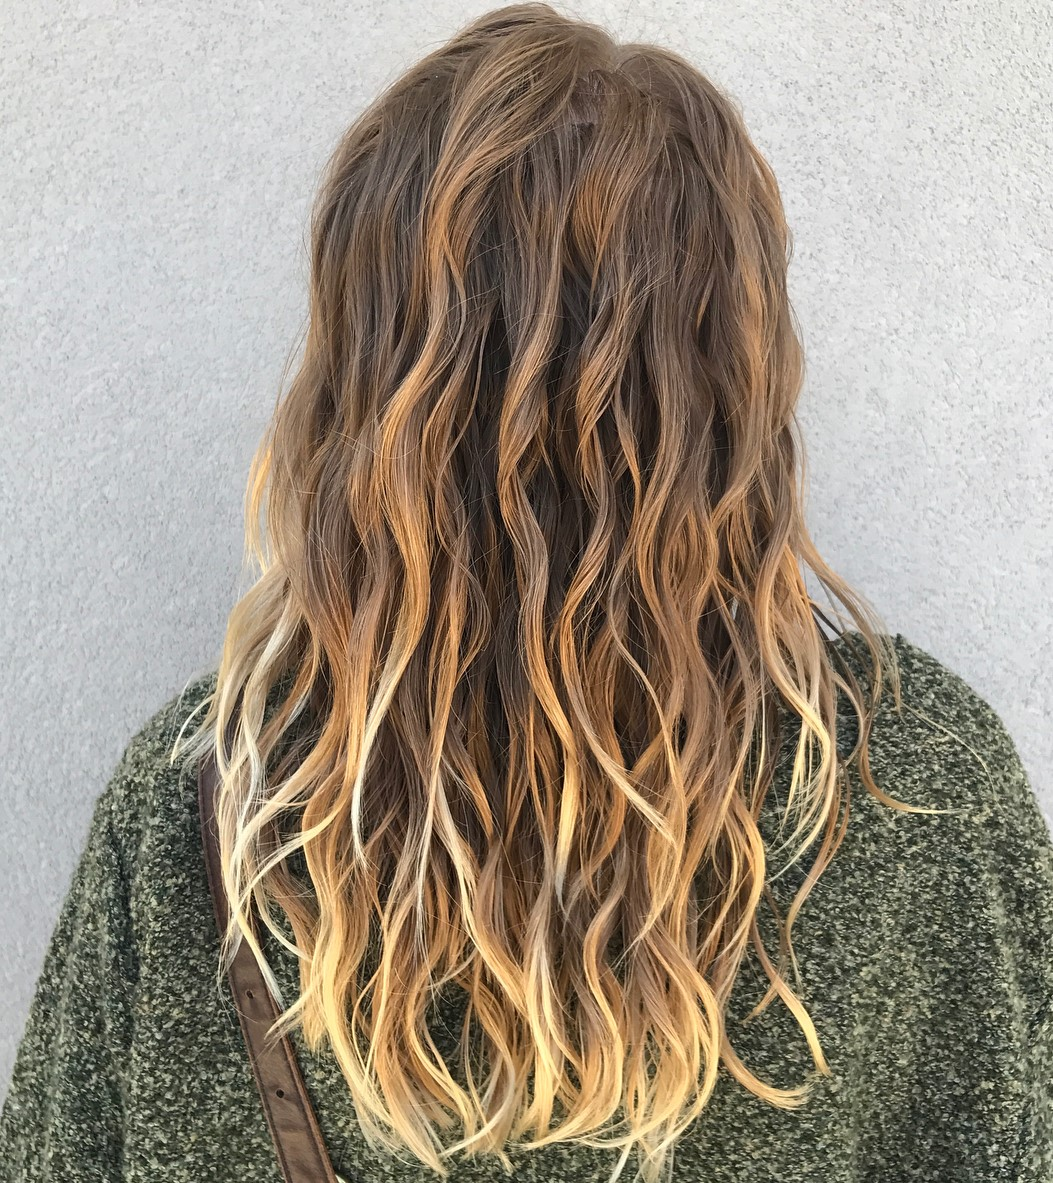 Bronde Beach Wave Perm